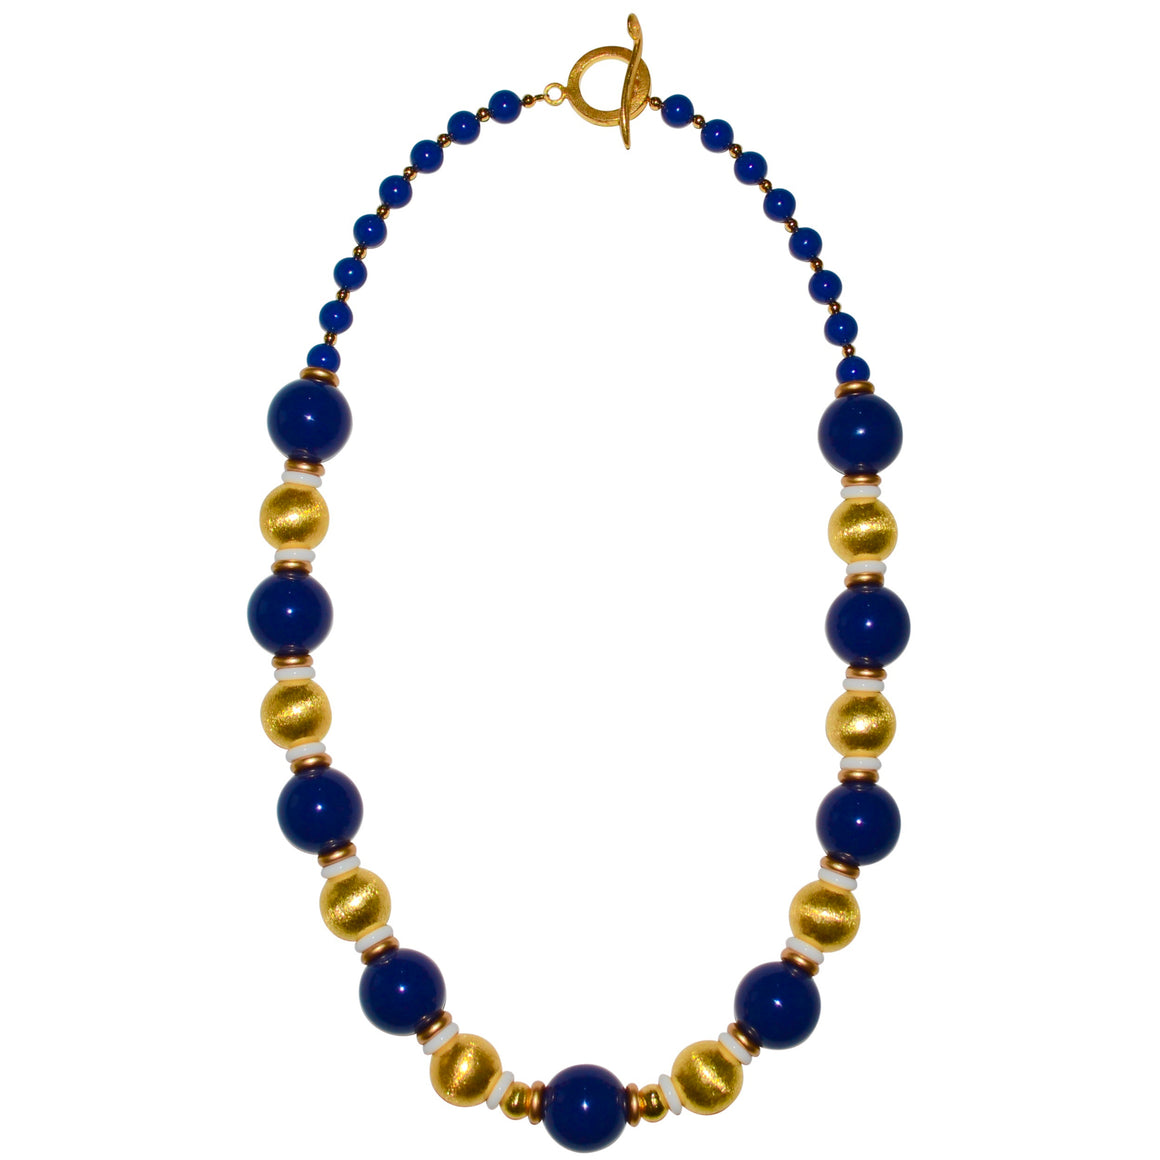 BLAKE LONG NECKLACE IN NAVY BLUE